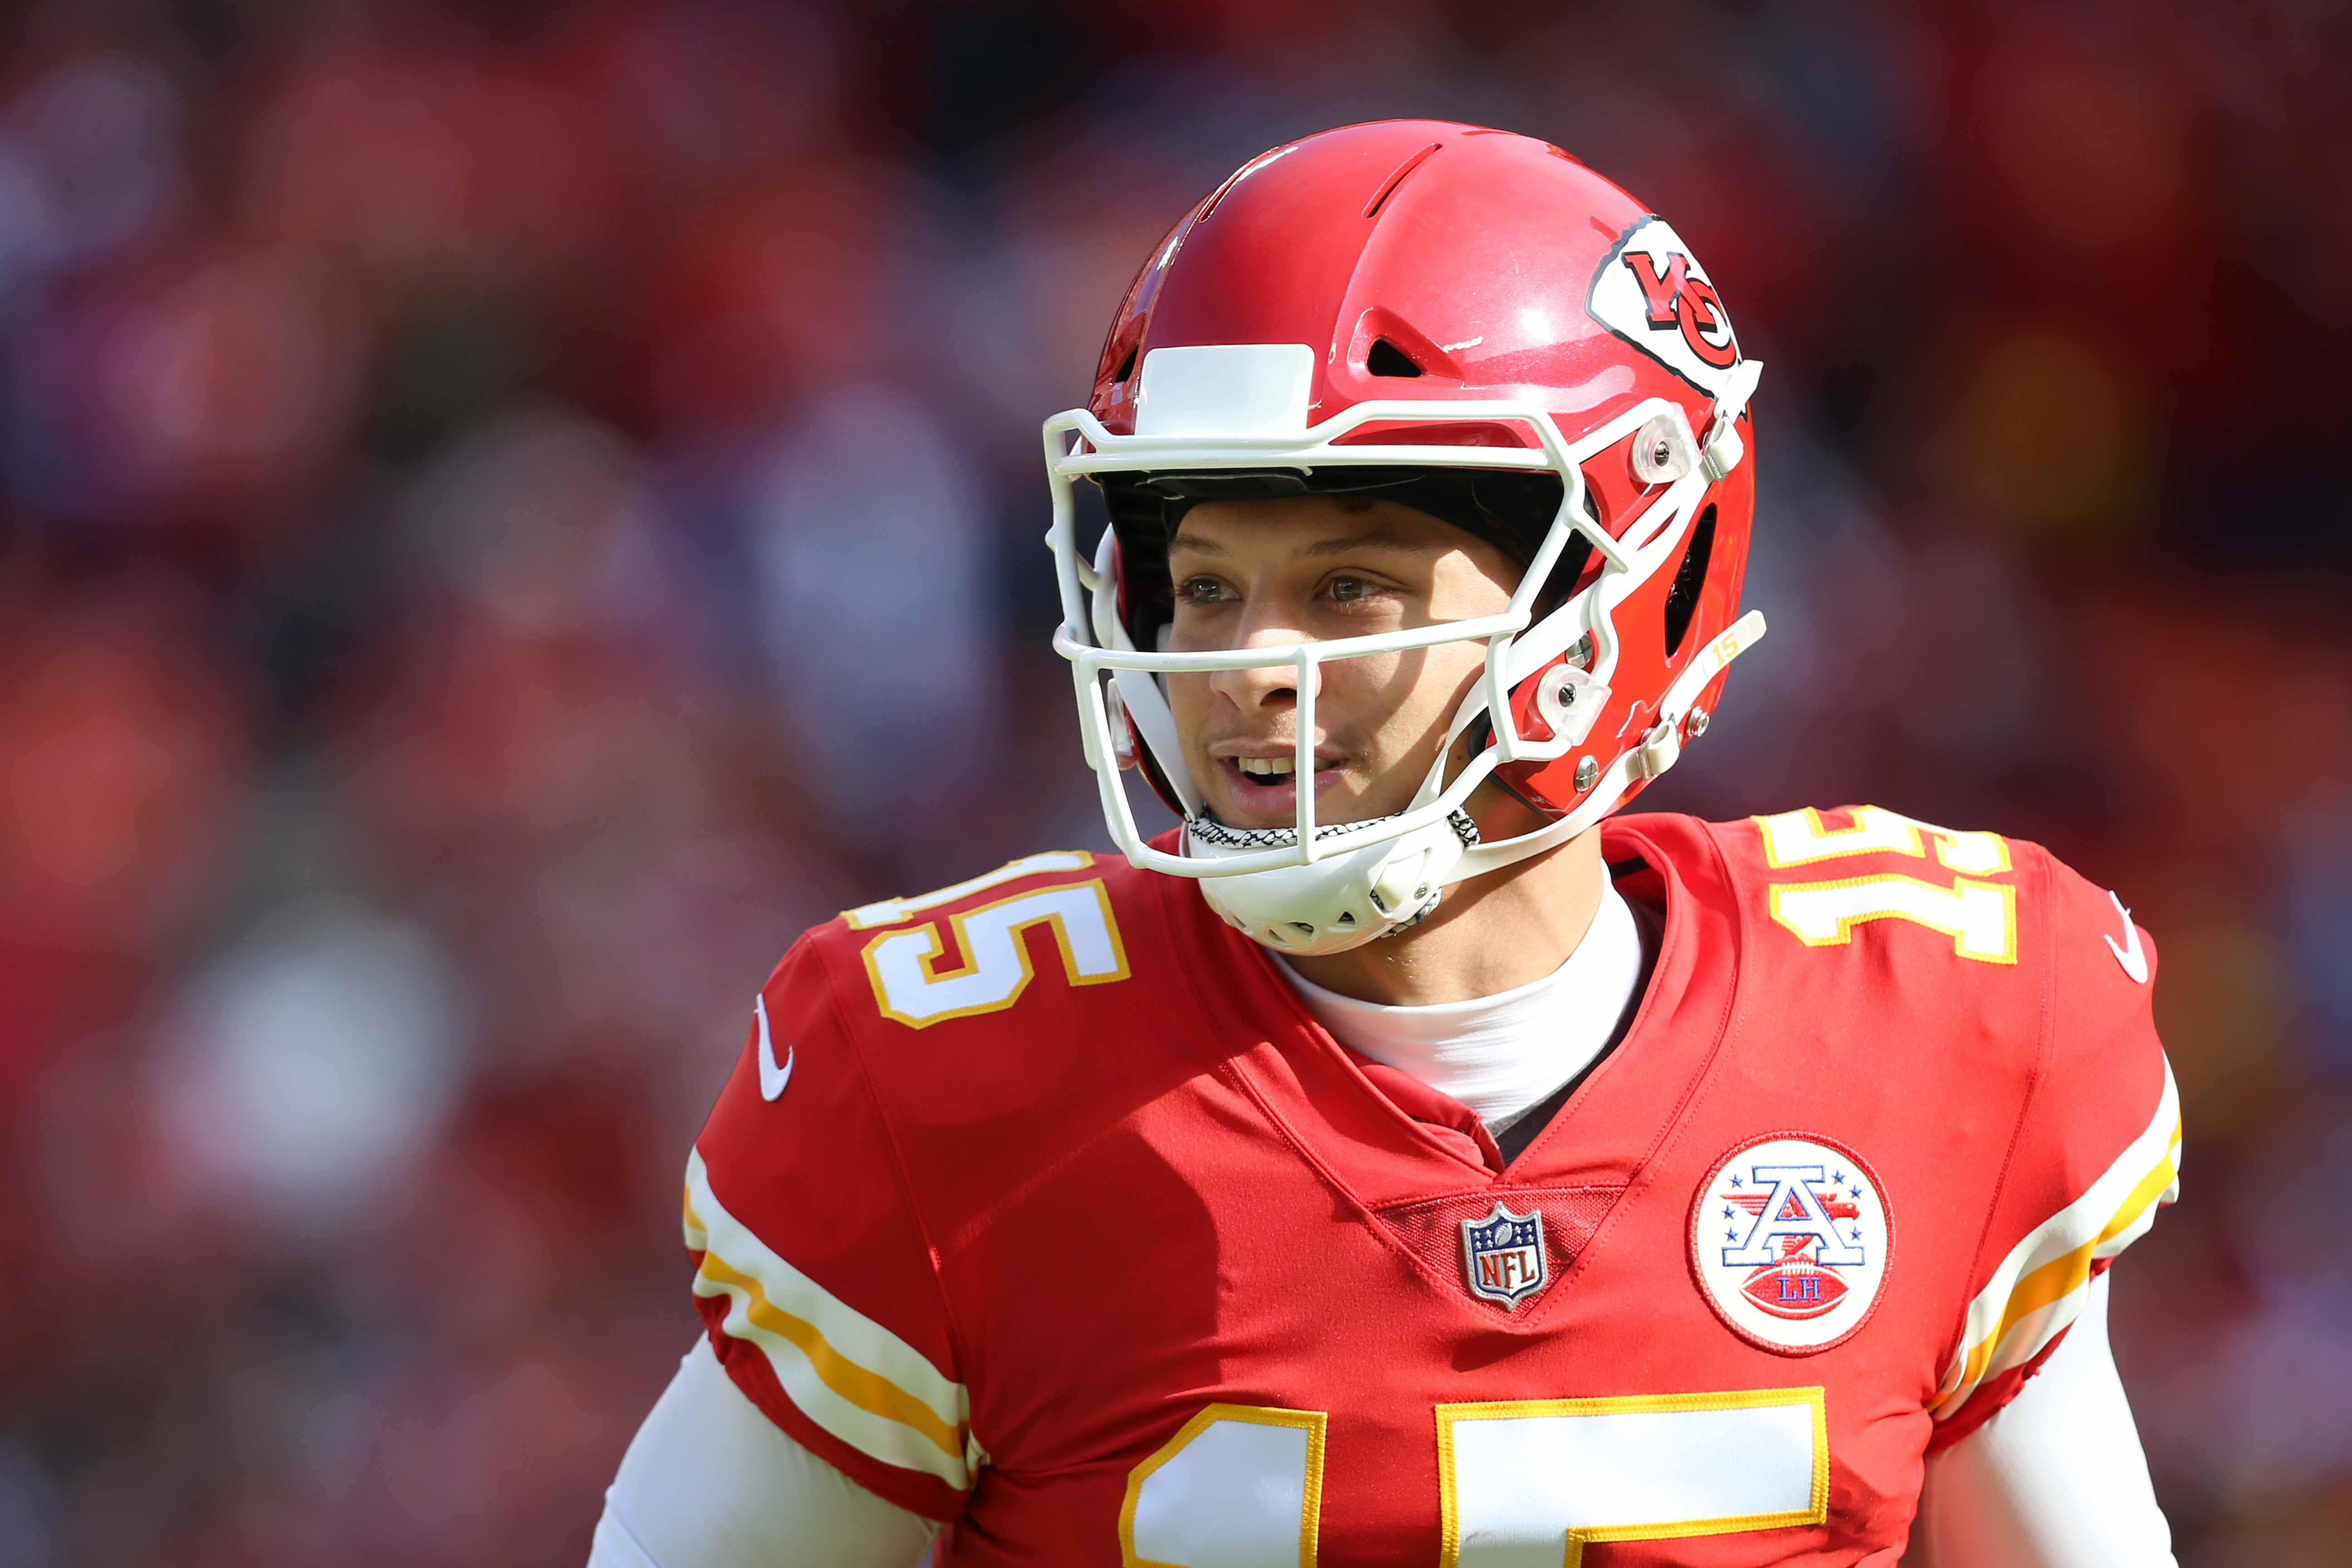 Kansas City Chiefs quarterback Patrick Mahomes after a 37-yard touchdown pass early in the first quarter of a week 10 NFL game between the Arizona Cardinals and Kansas City Chiefs on November 11, 2018 at Arrowhead Stadium in Kansas City, MO.